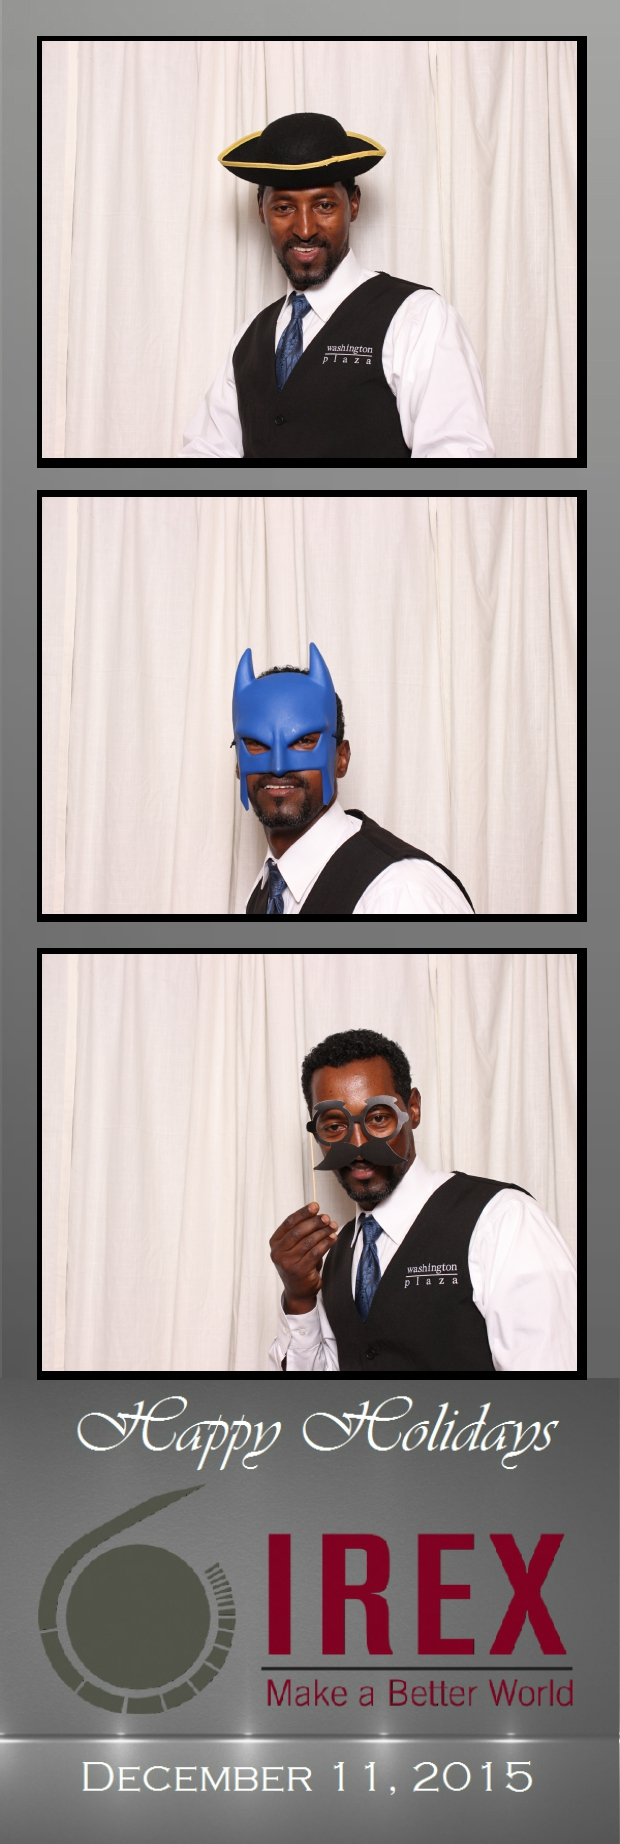 Guest House Events Photo Booth Strips IREX (5).jpg